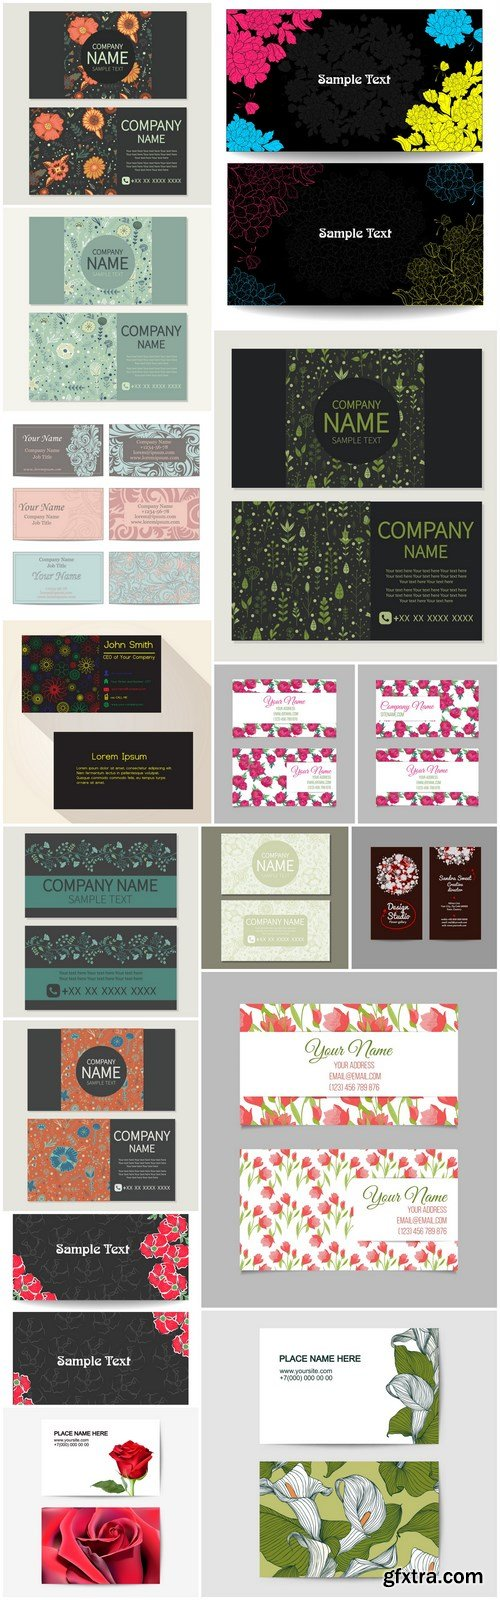 Business Card With Flowers - 16 Vector